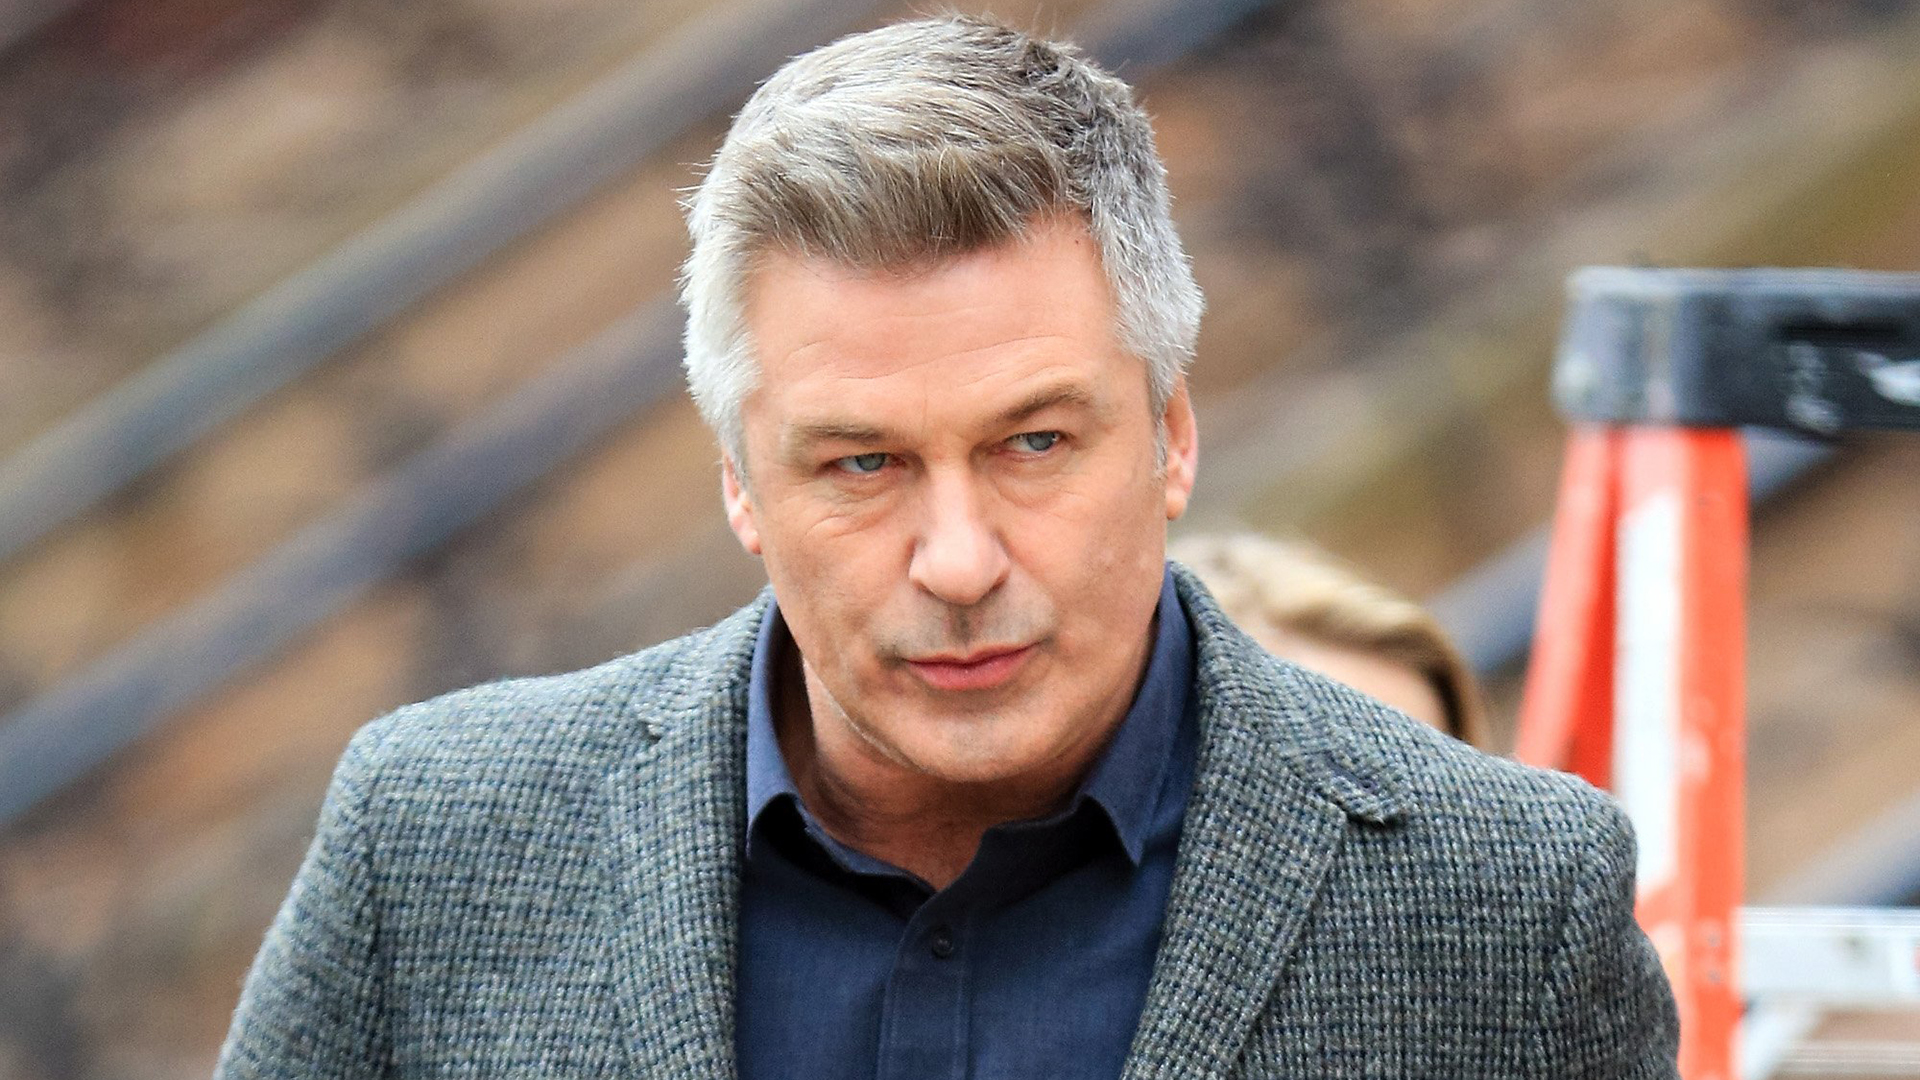 Lyme disease: Alec Baldwin opens up about chronic battle ... Alec Baldwin